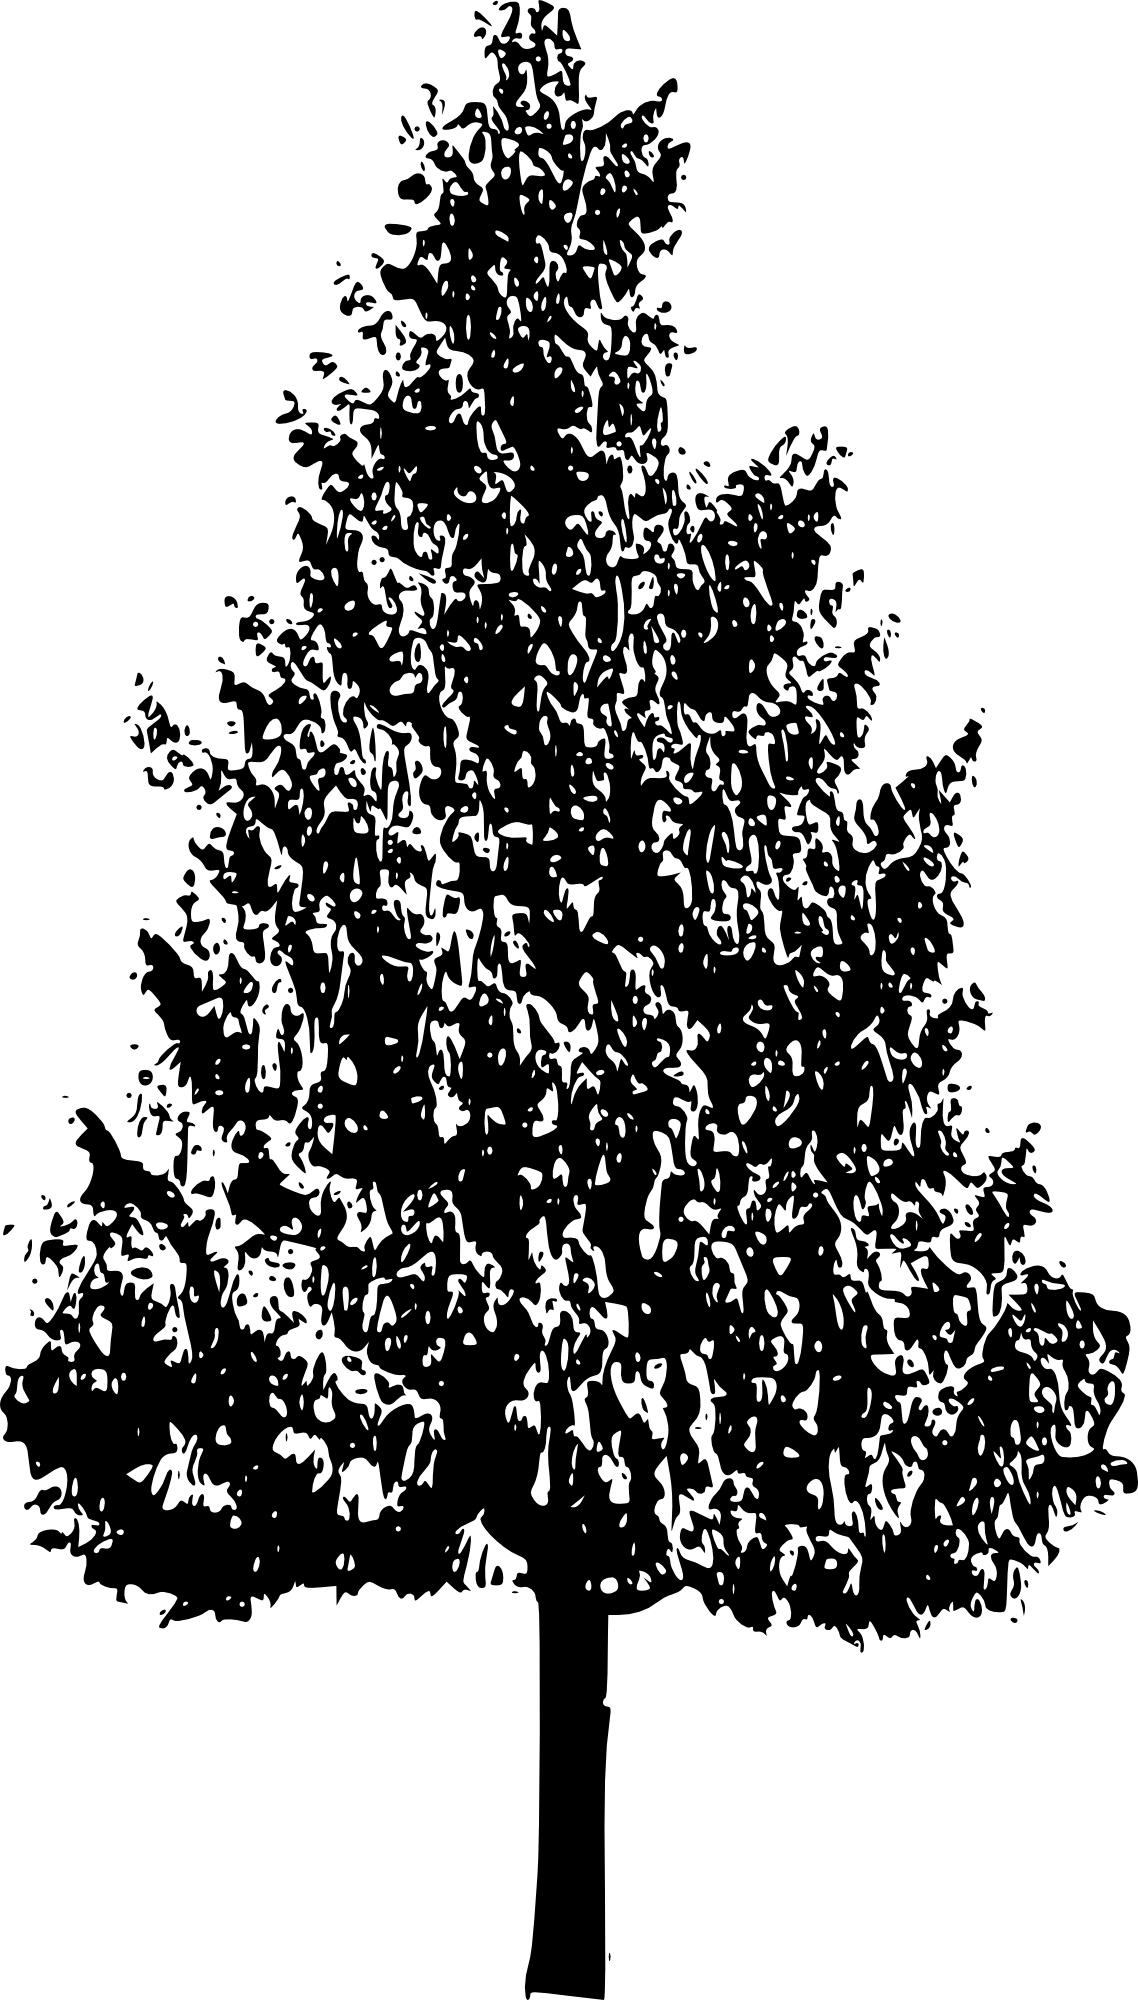 Fern pine png. Tree silhouettes transparent